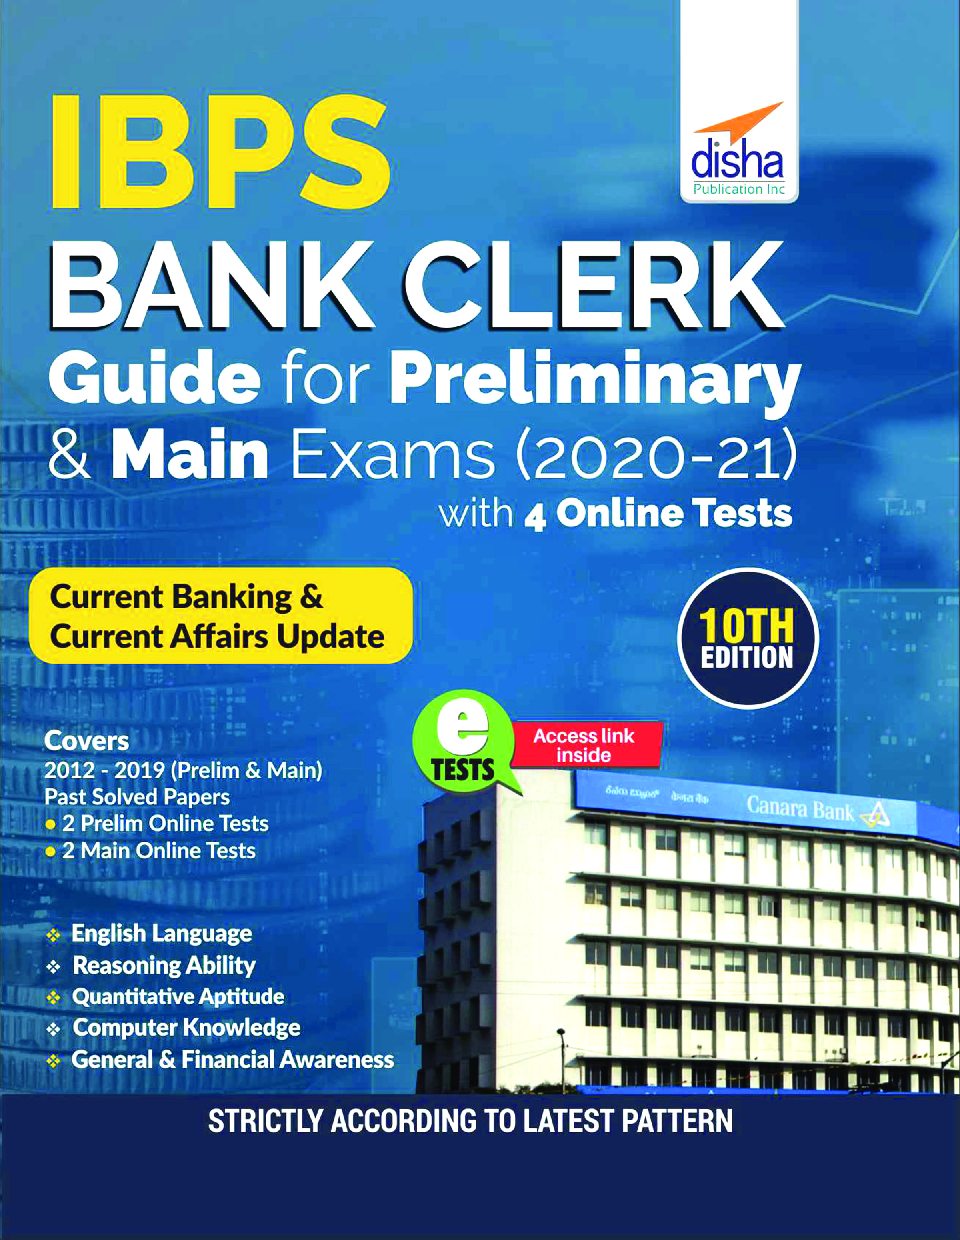 IBPS Bank Clerk Guide For Preliminary & Main Exams 2020-21 With 4 Online Tests (10th Edition) - Page 1